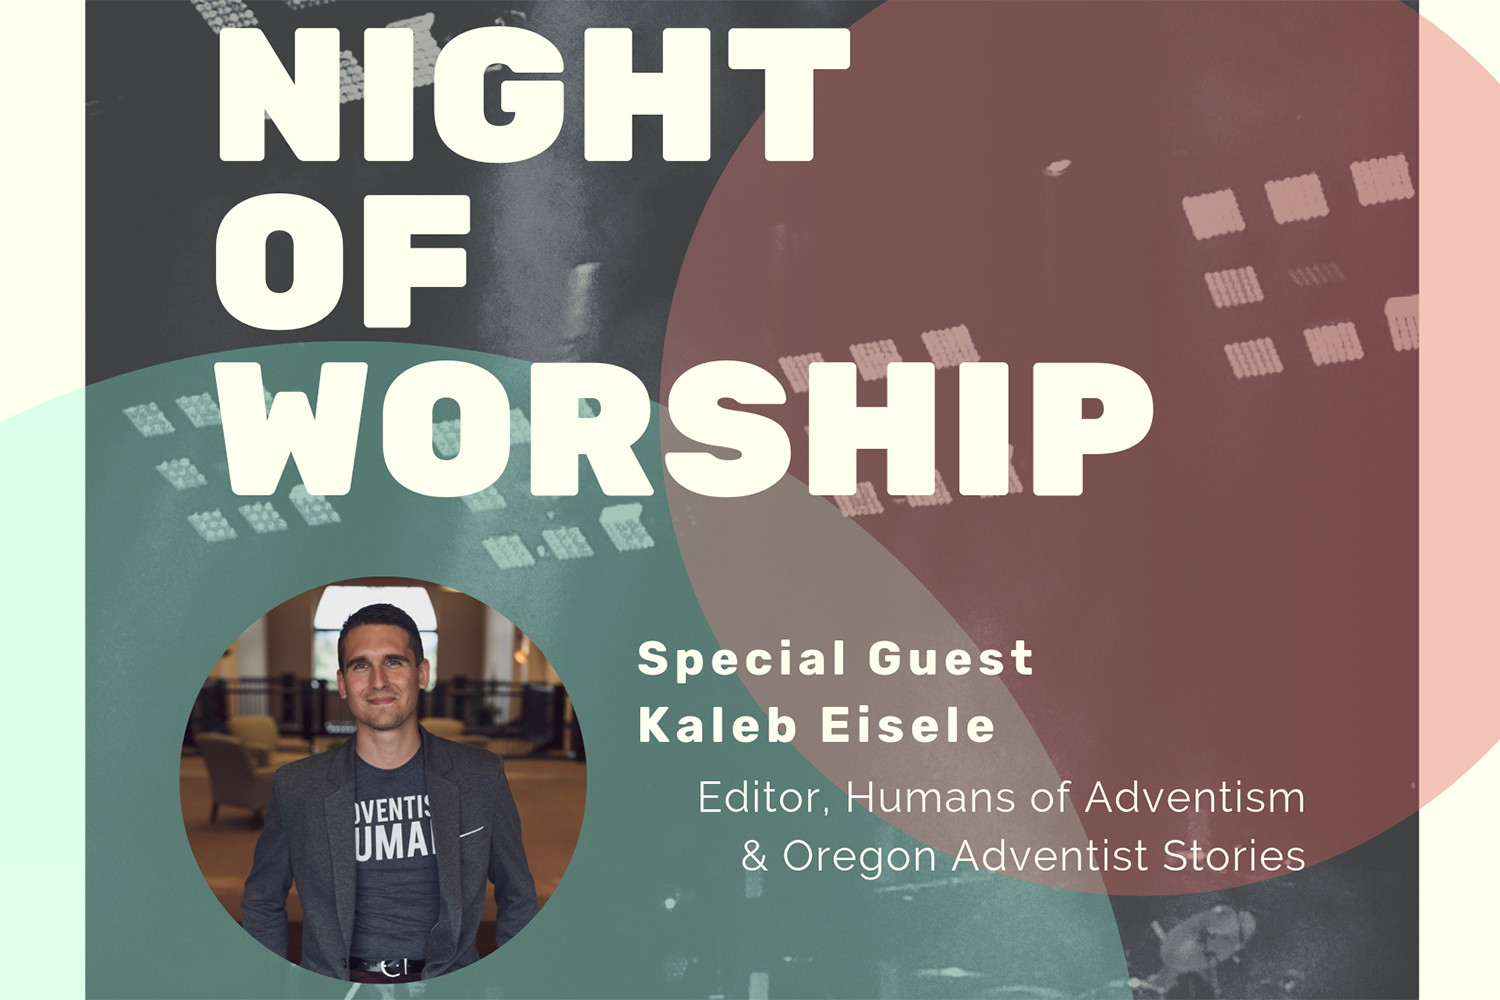 Night of Worship at Crosspoint